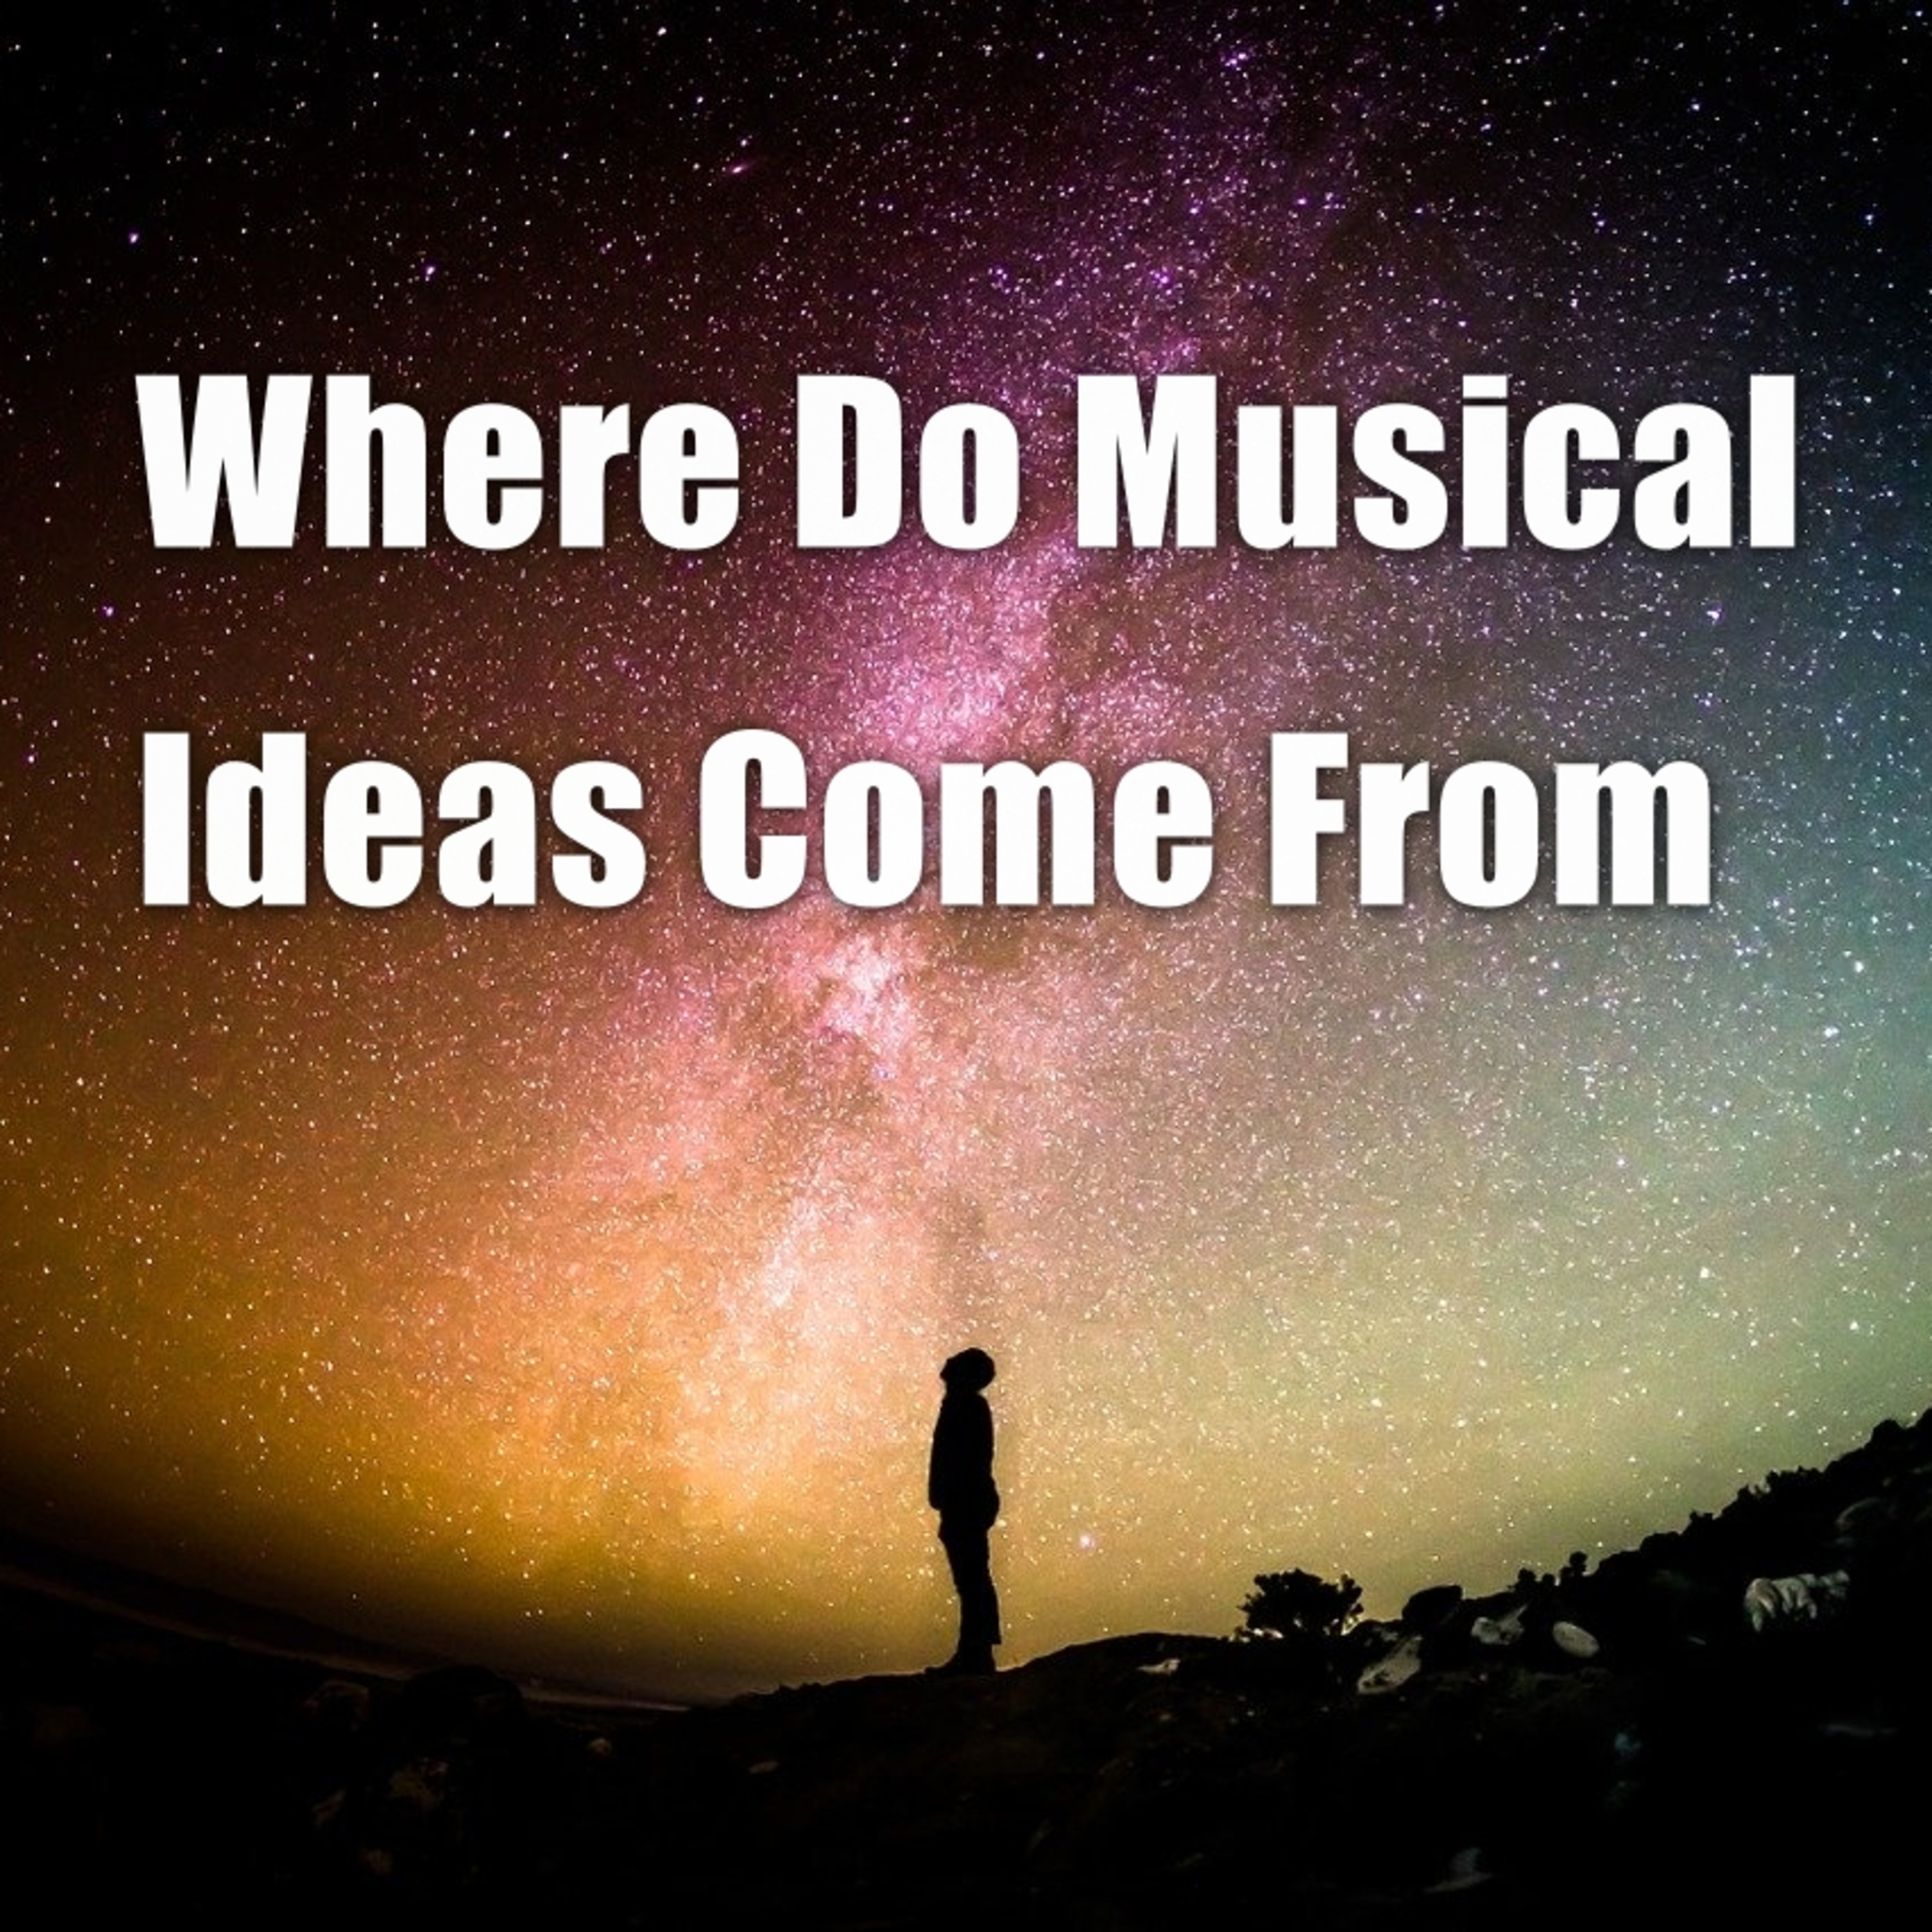 Where Do Musical Ideas Come From